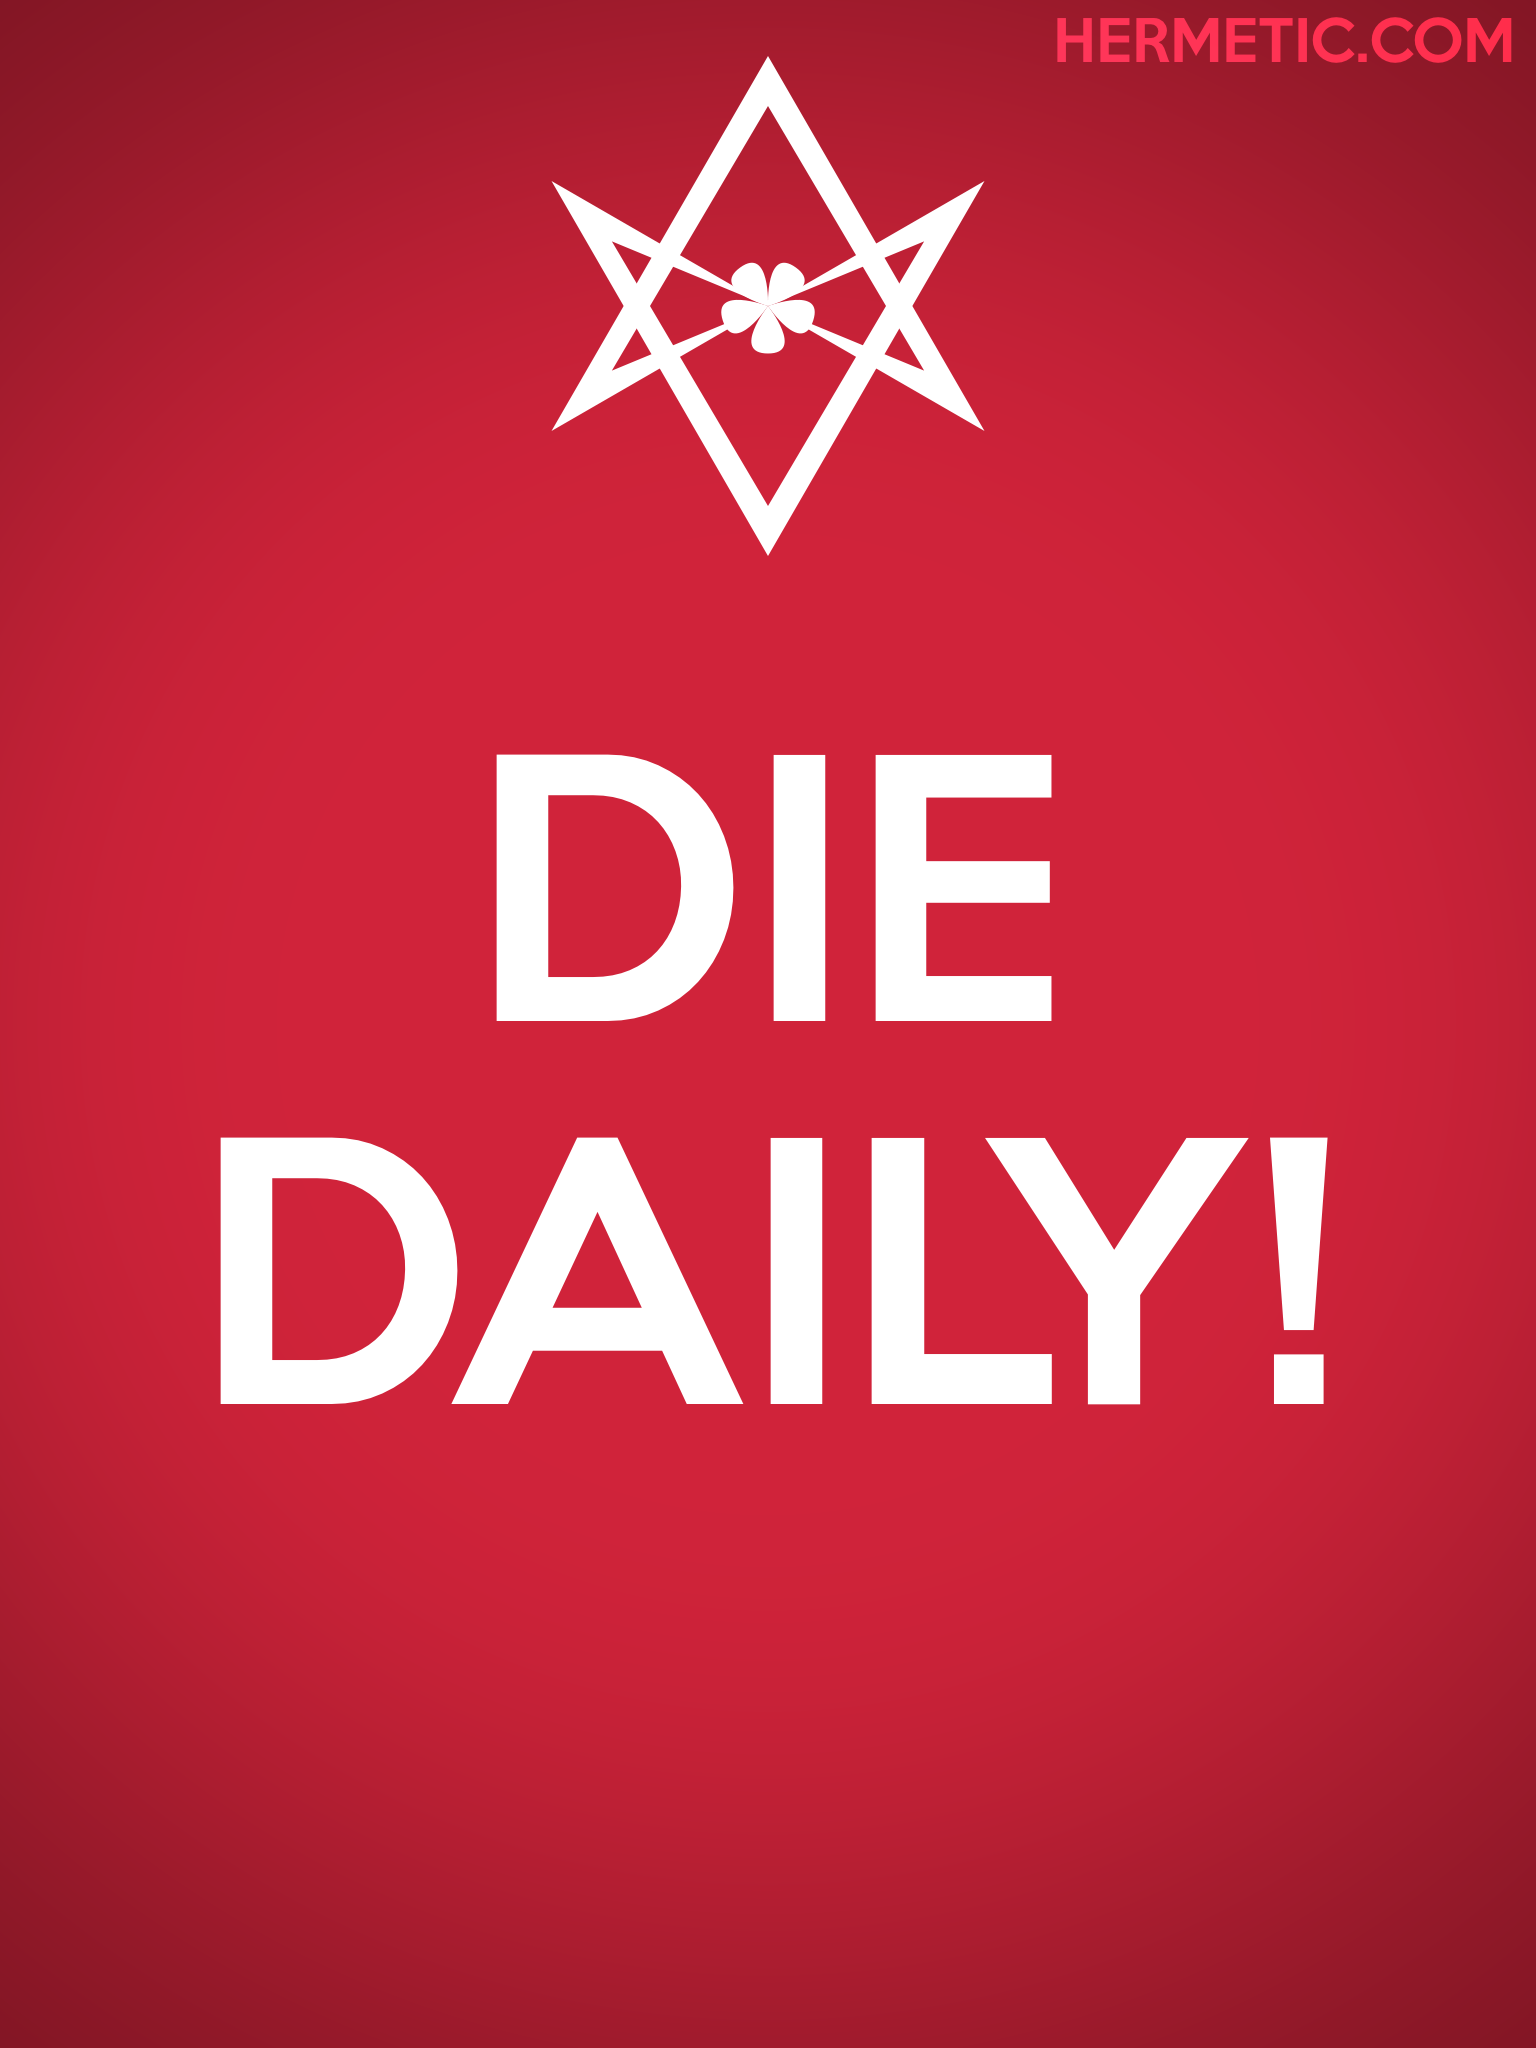 Unicursal DIE DAILY Propaganda Poster from Hermetic Library Office of the Ministry of Information